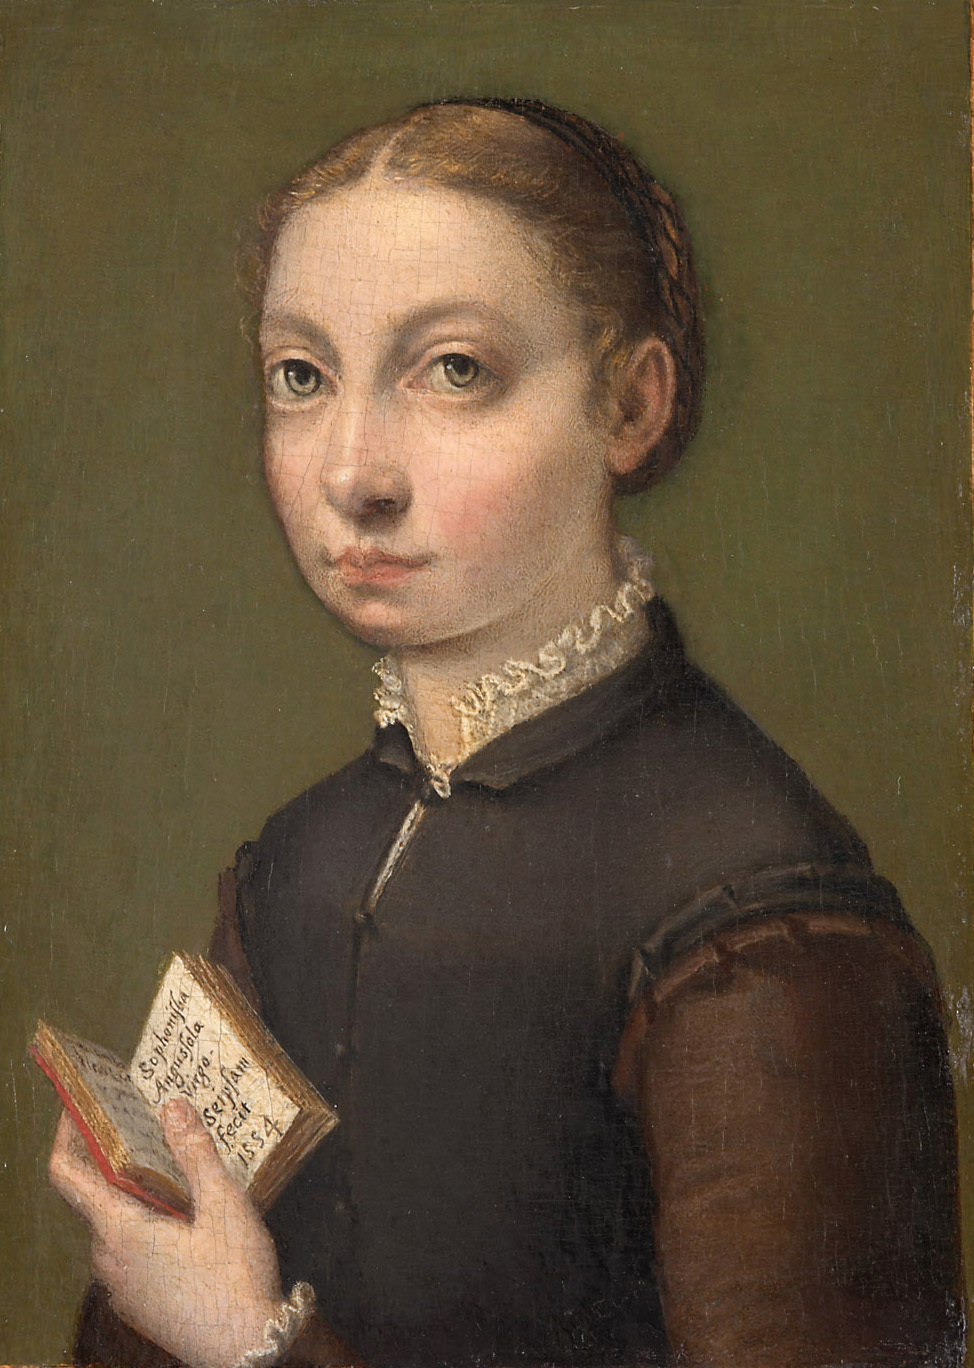 Self-portrait, 1554, Sofonisba Anguissola, Kunsthistorisches Museum, In Copyright